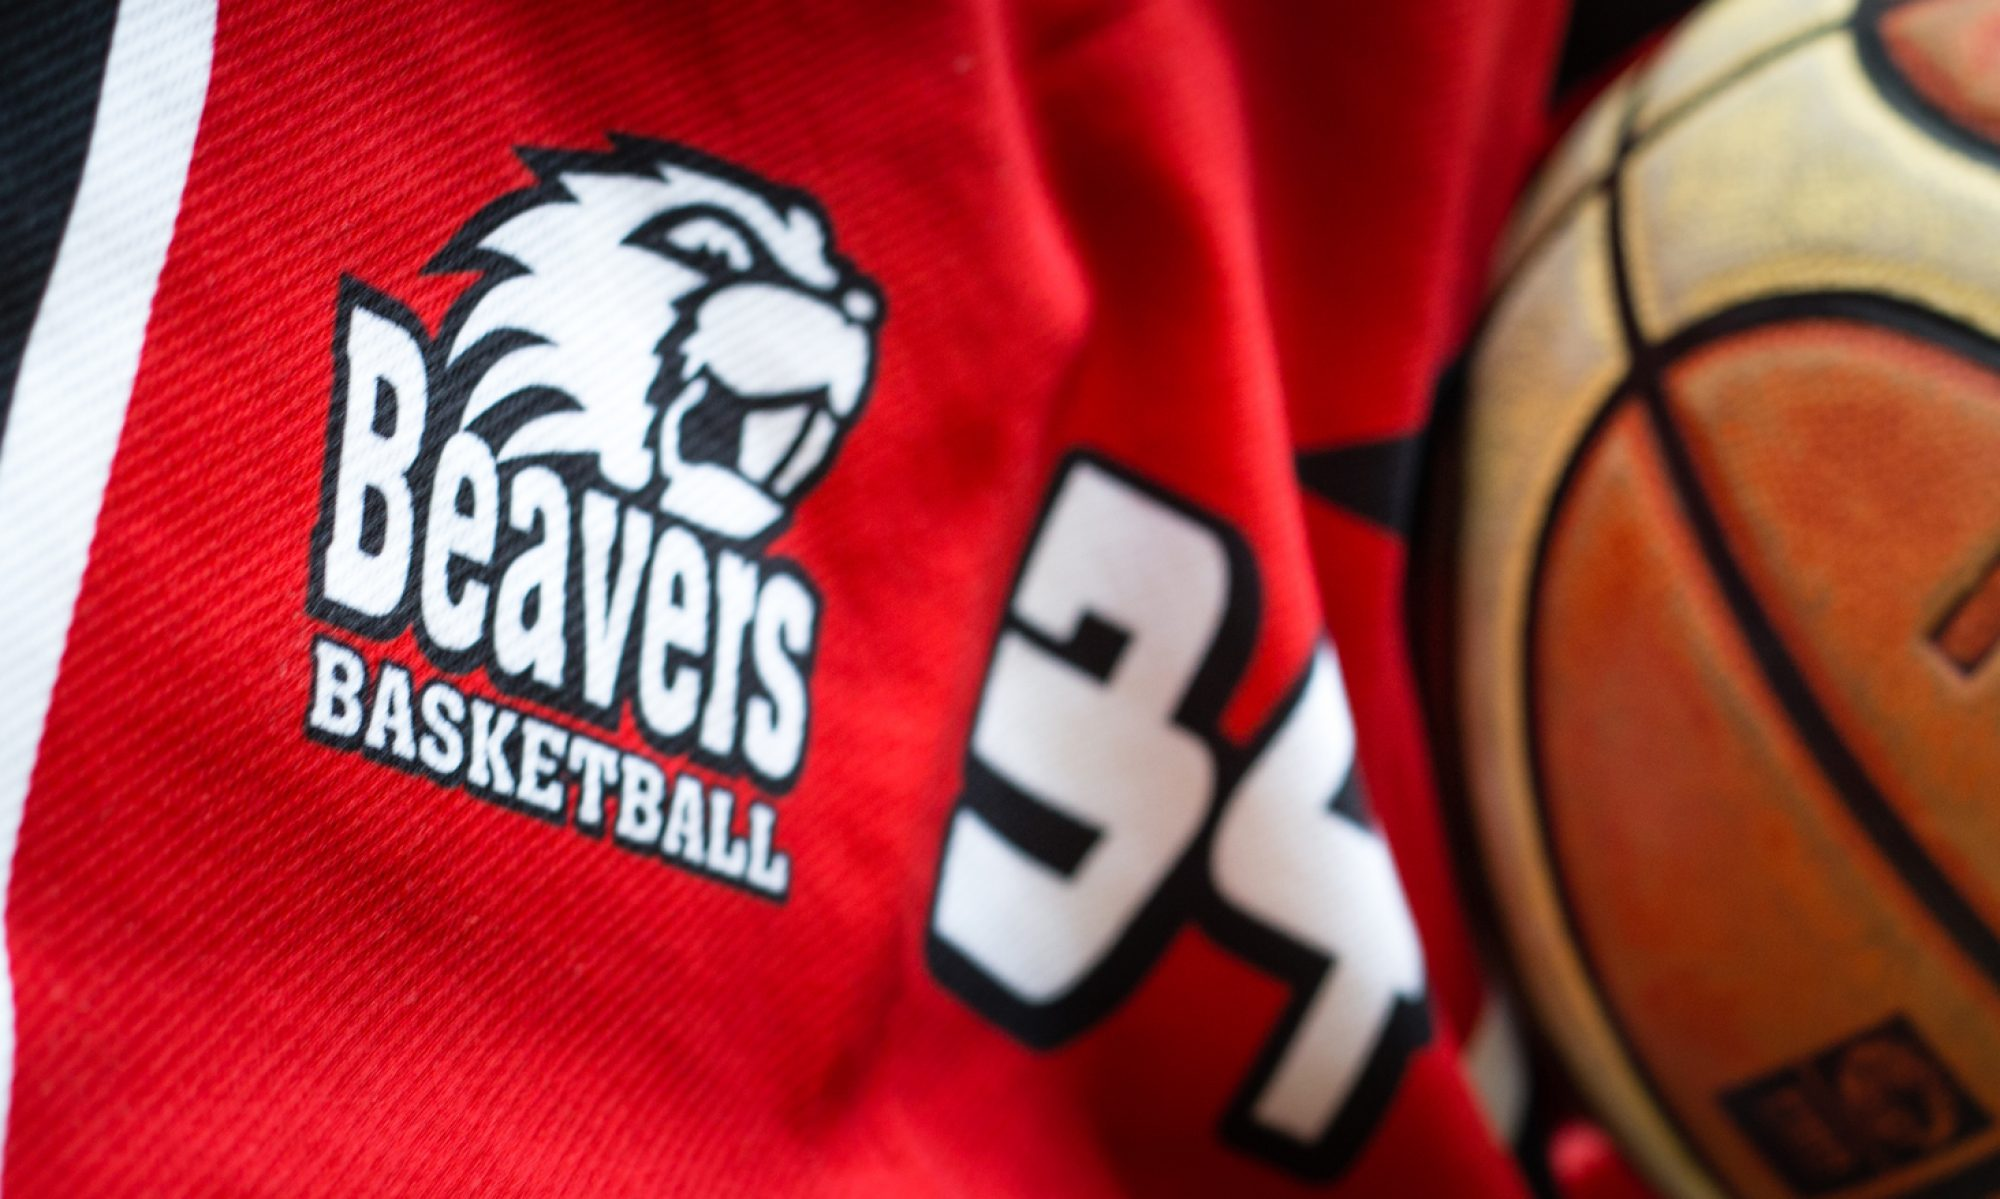 Beavers Basketball Club Bendigo